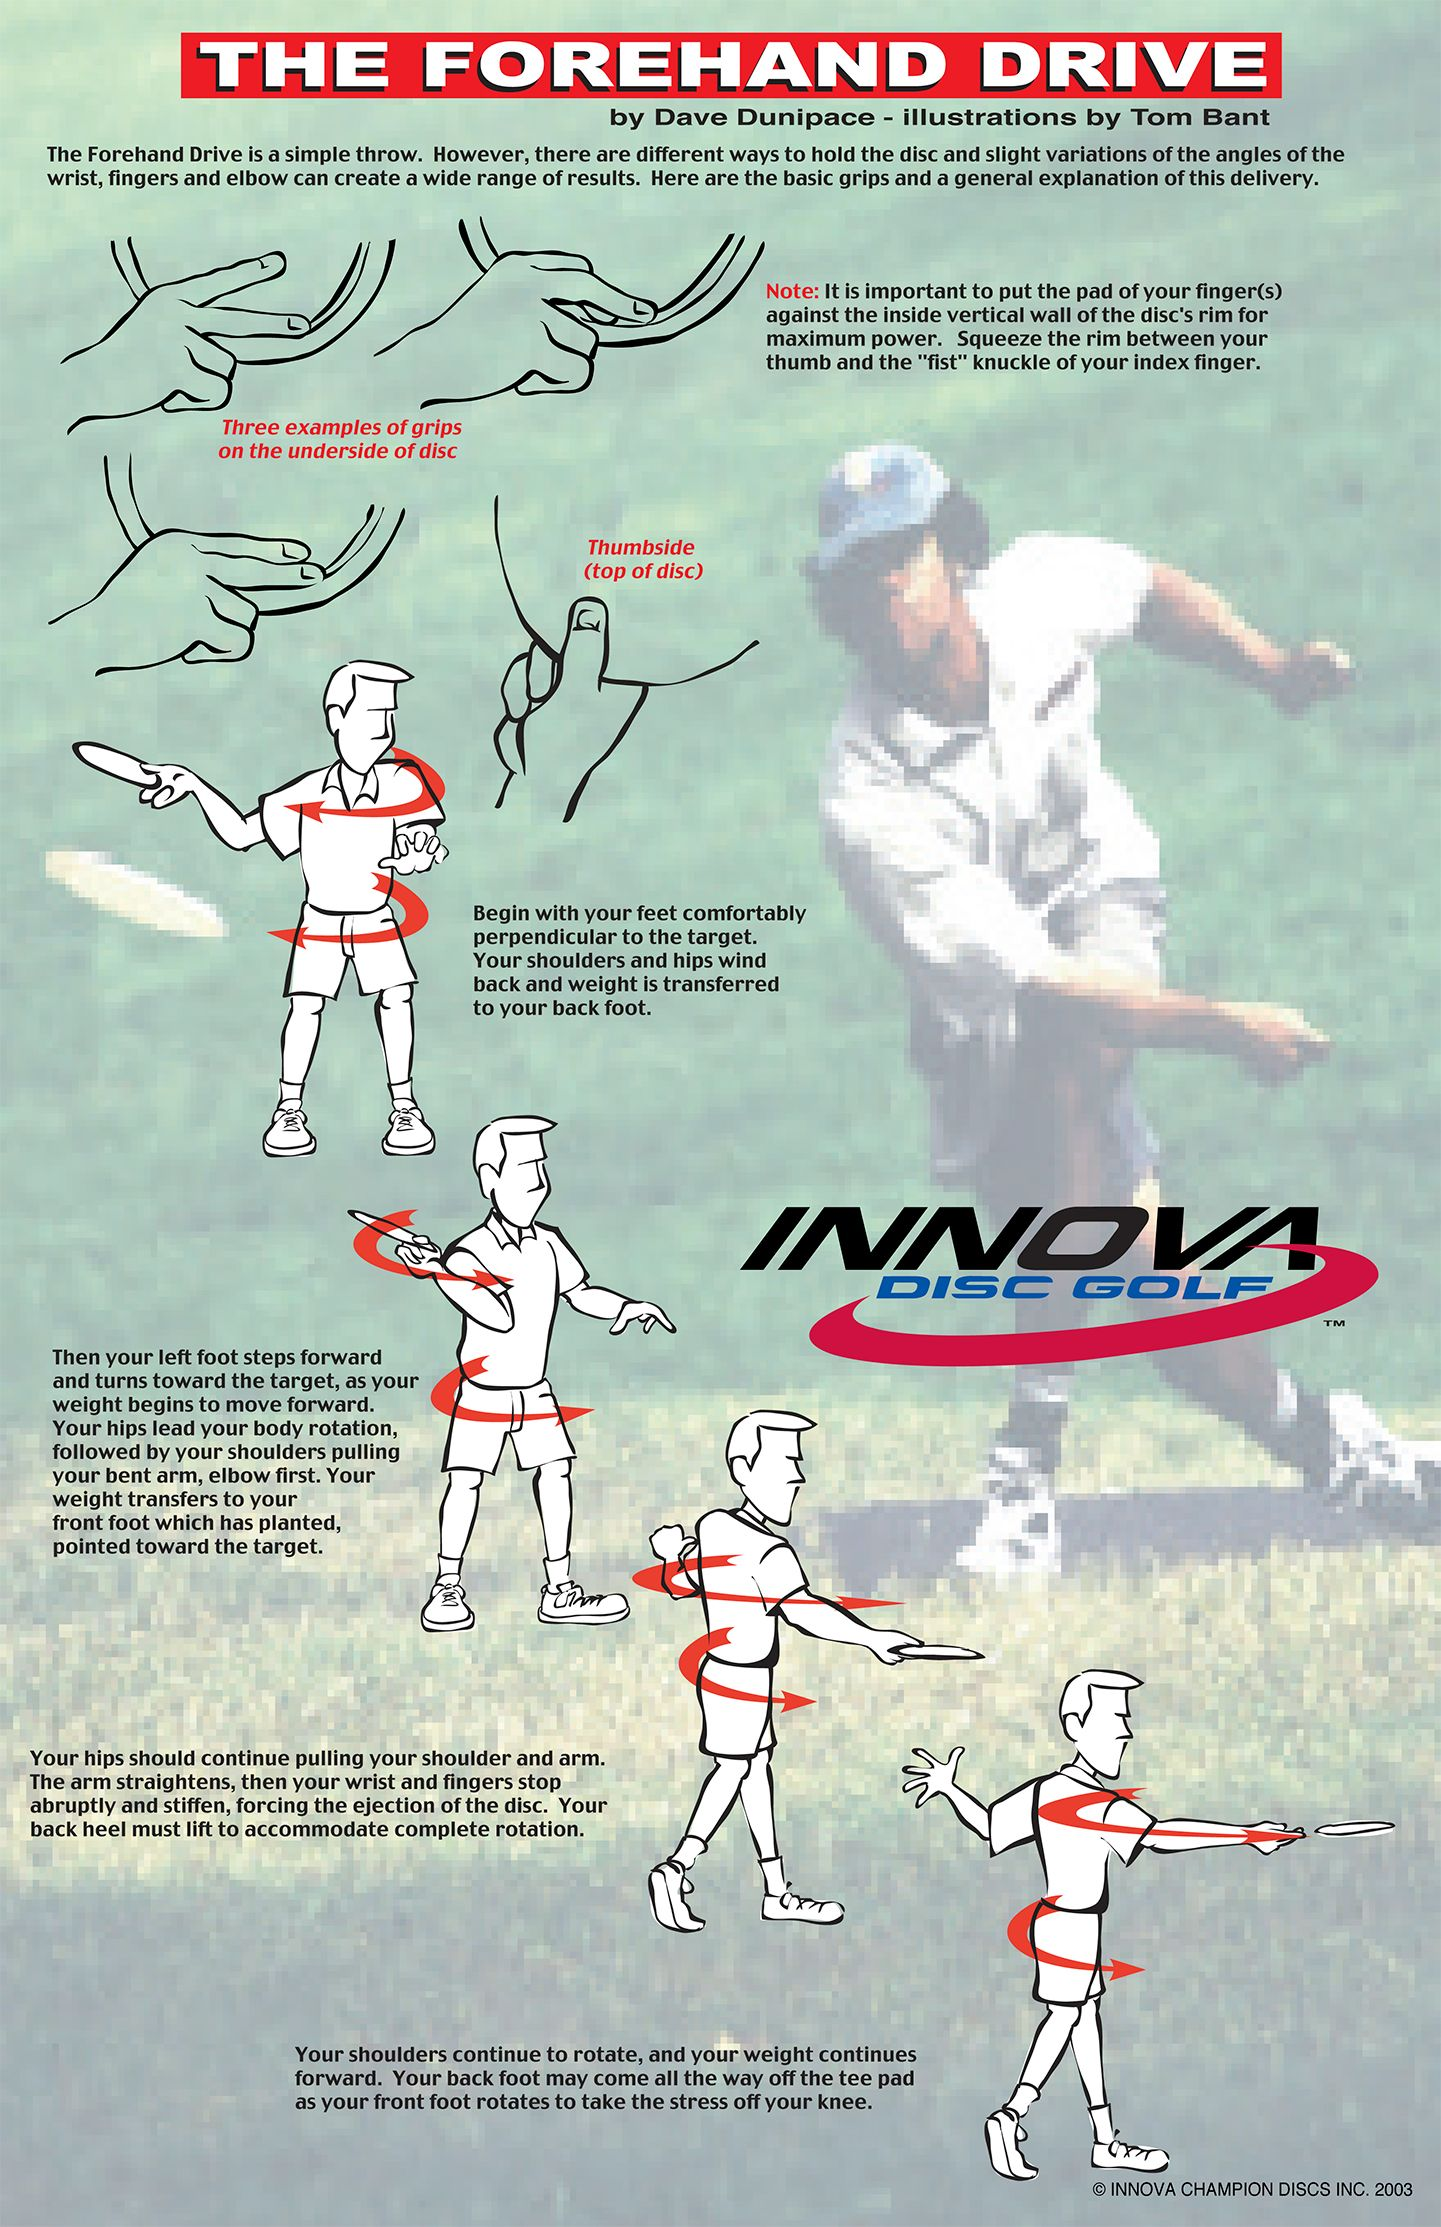 how to throw disc golf forehand